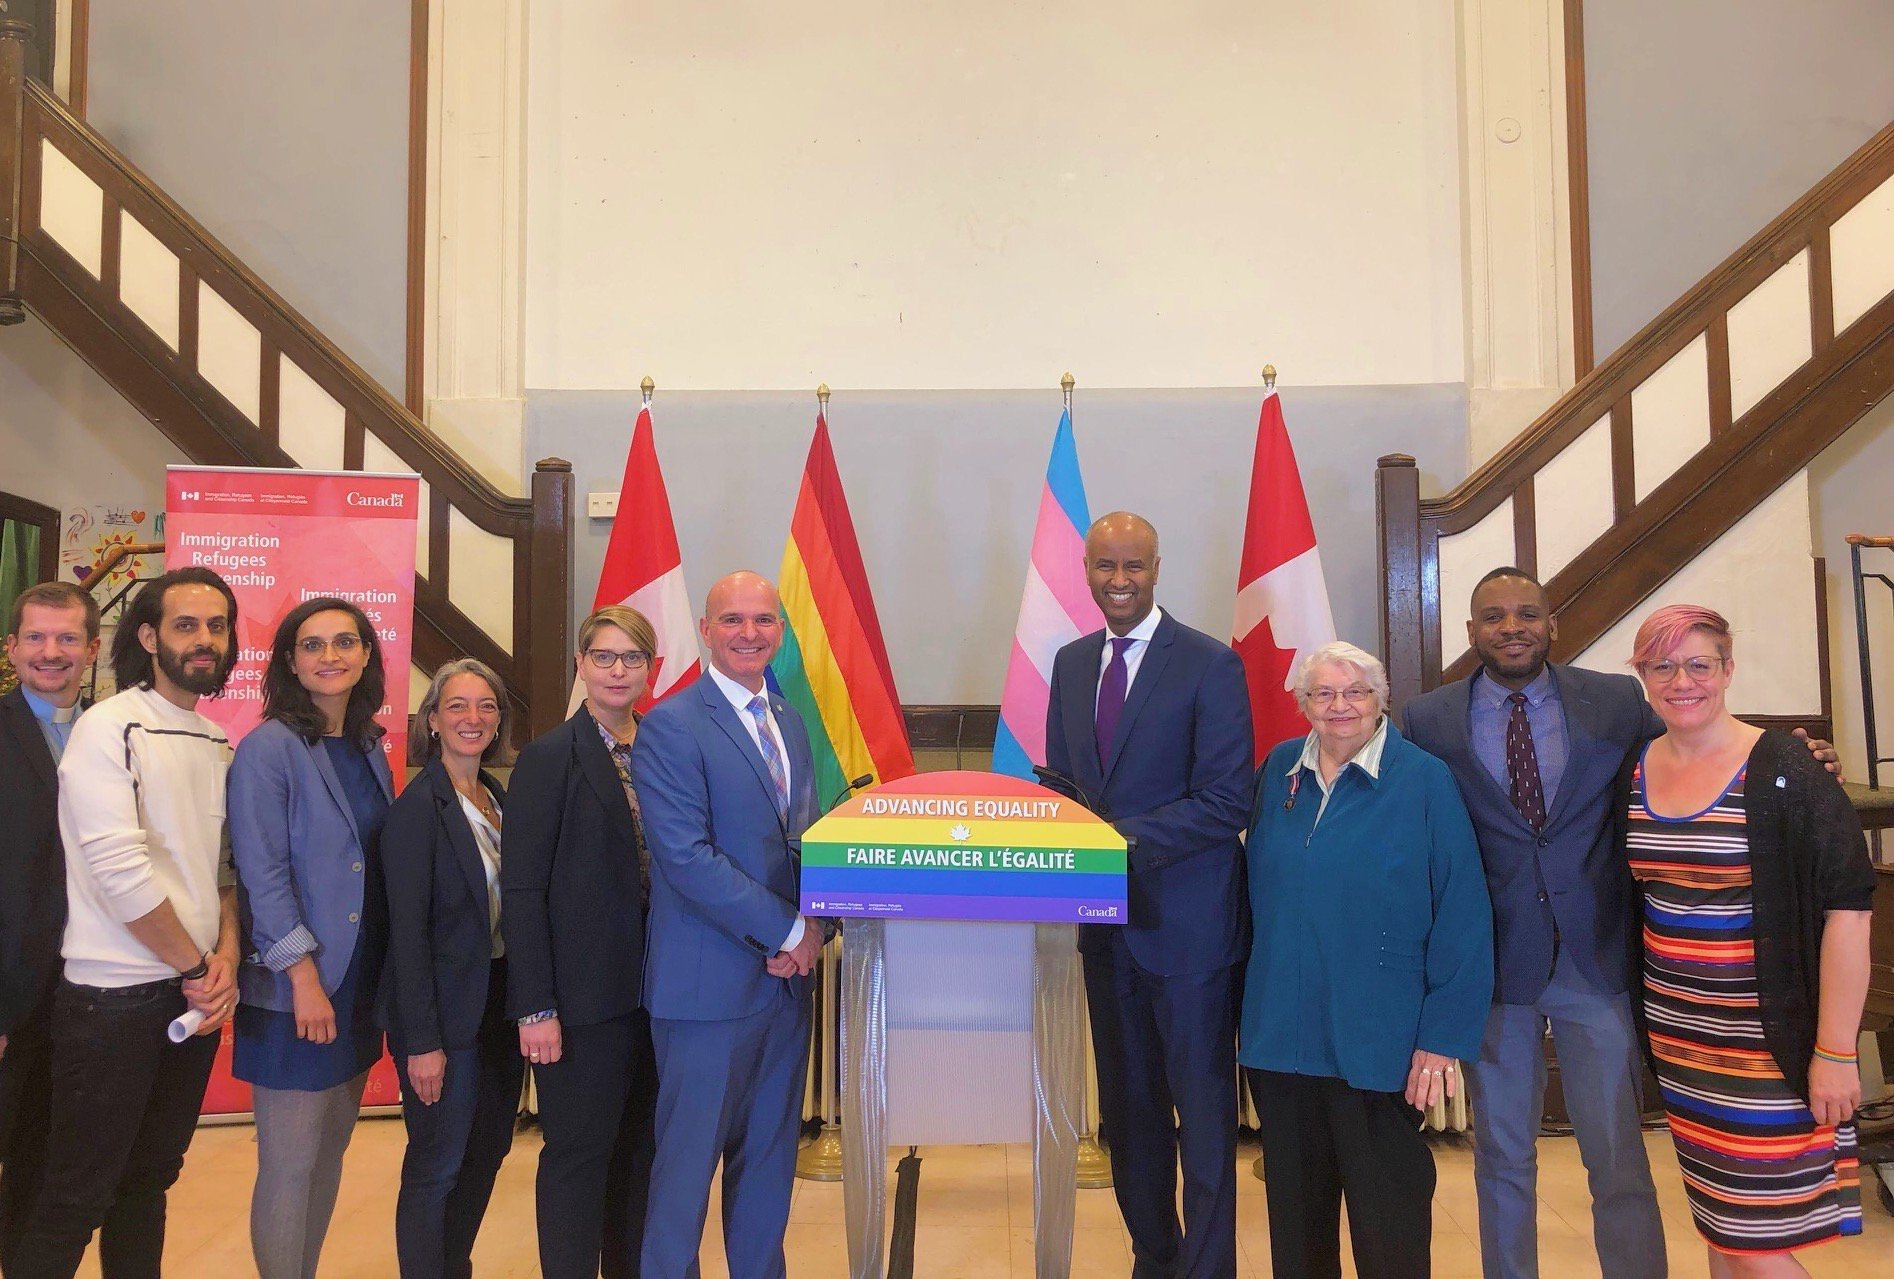 Rainbow Refugee Assistance Partnership, Canada's new way to support LGBTQ refugees